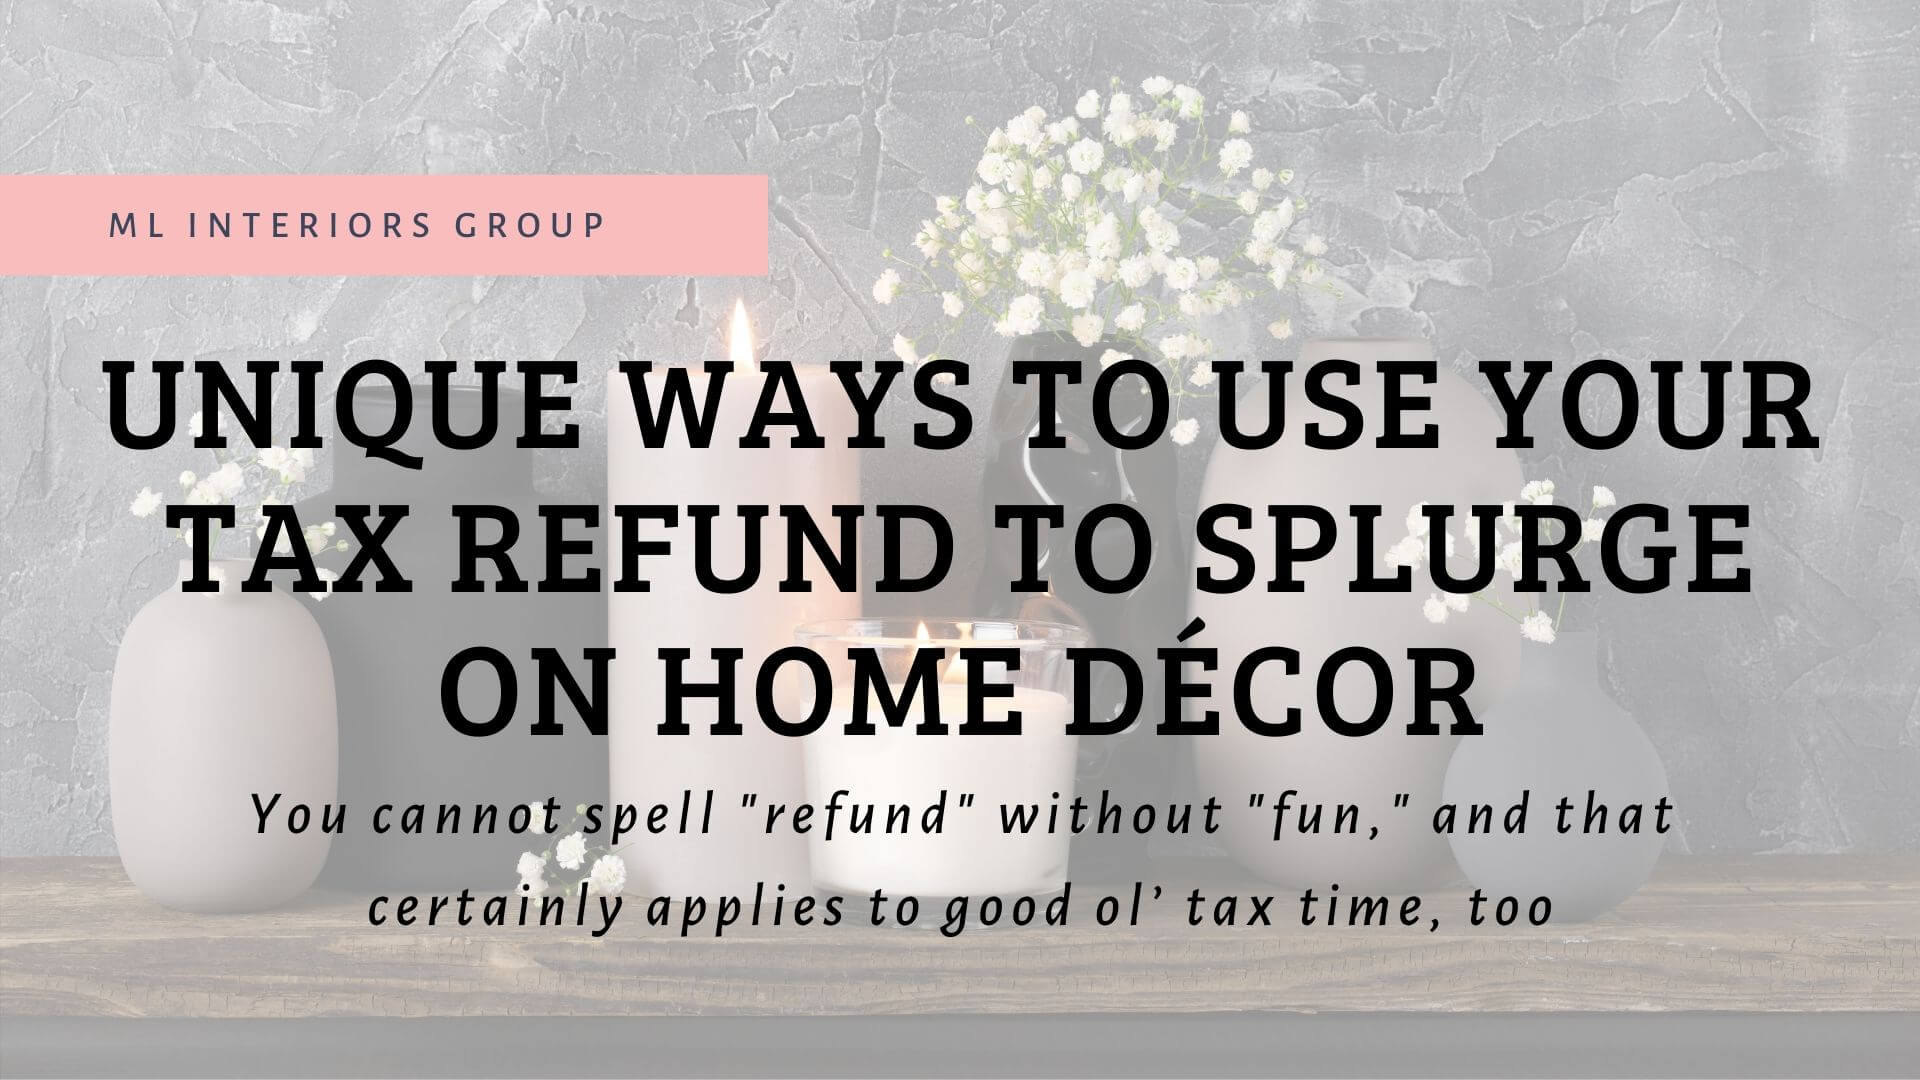 Unique Ways To Use Your Tax Refund | Splurging on Home Decor